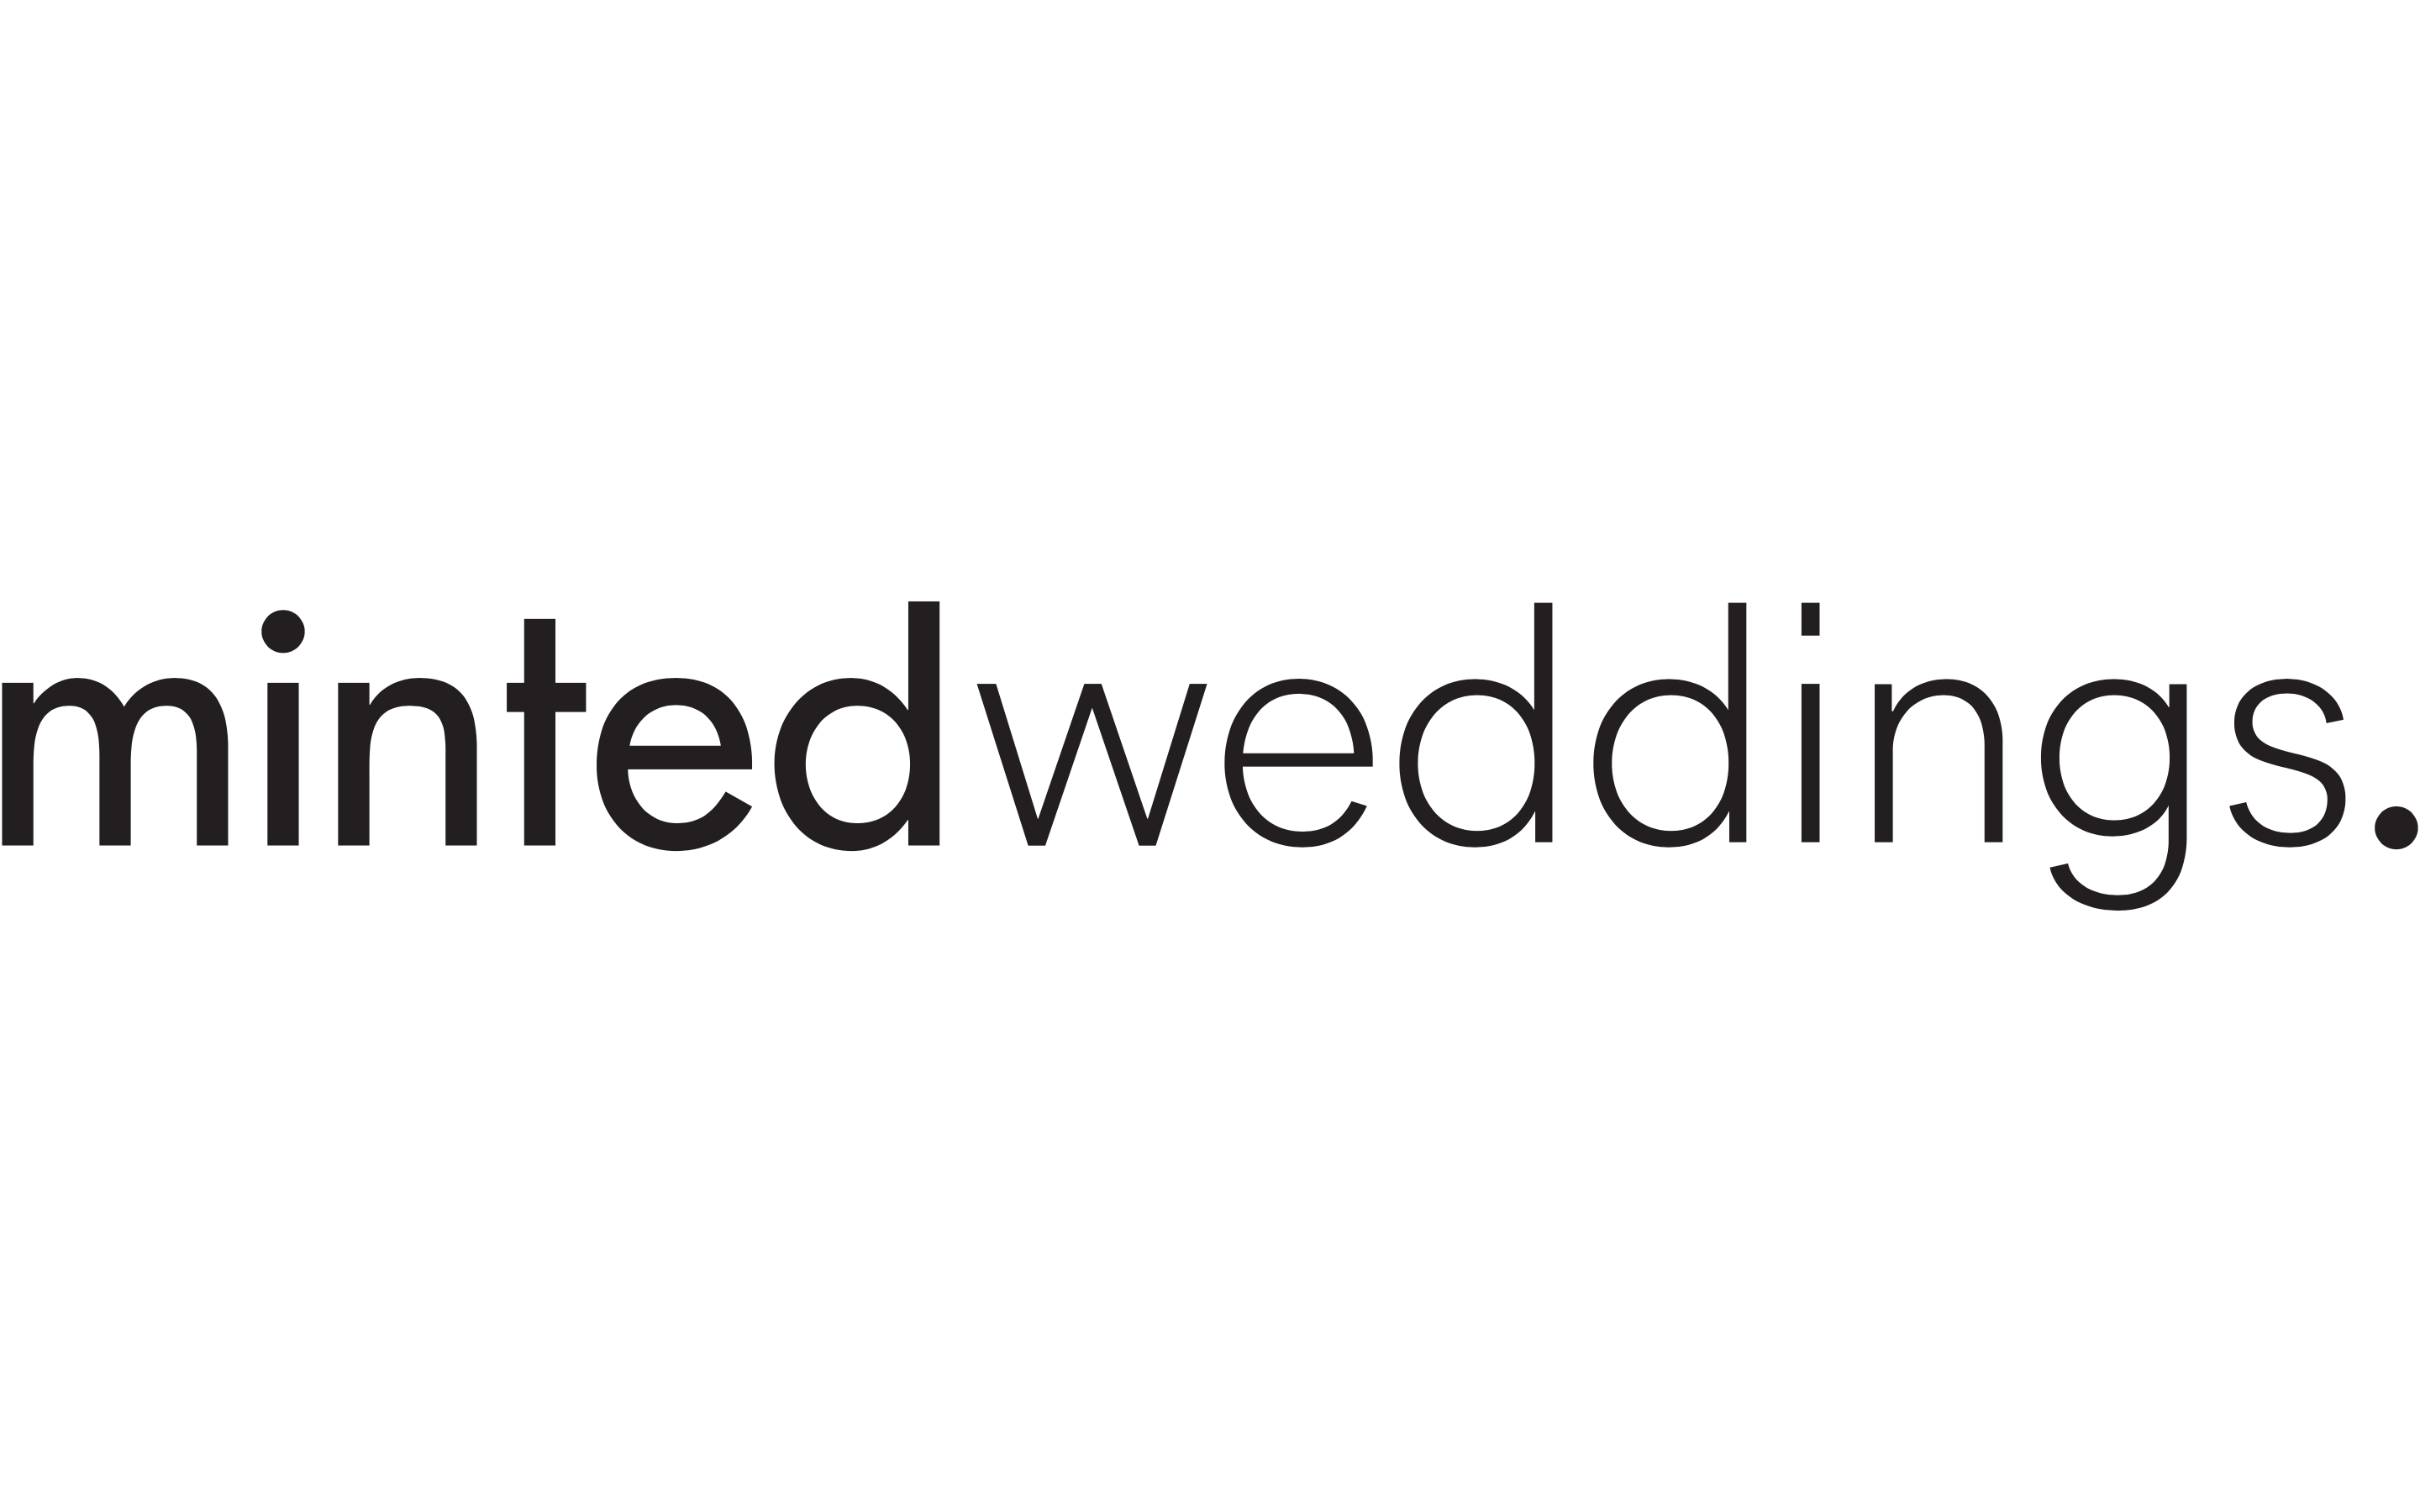 wedding management, wedding planning, wedding discounts